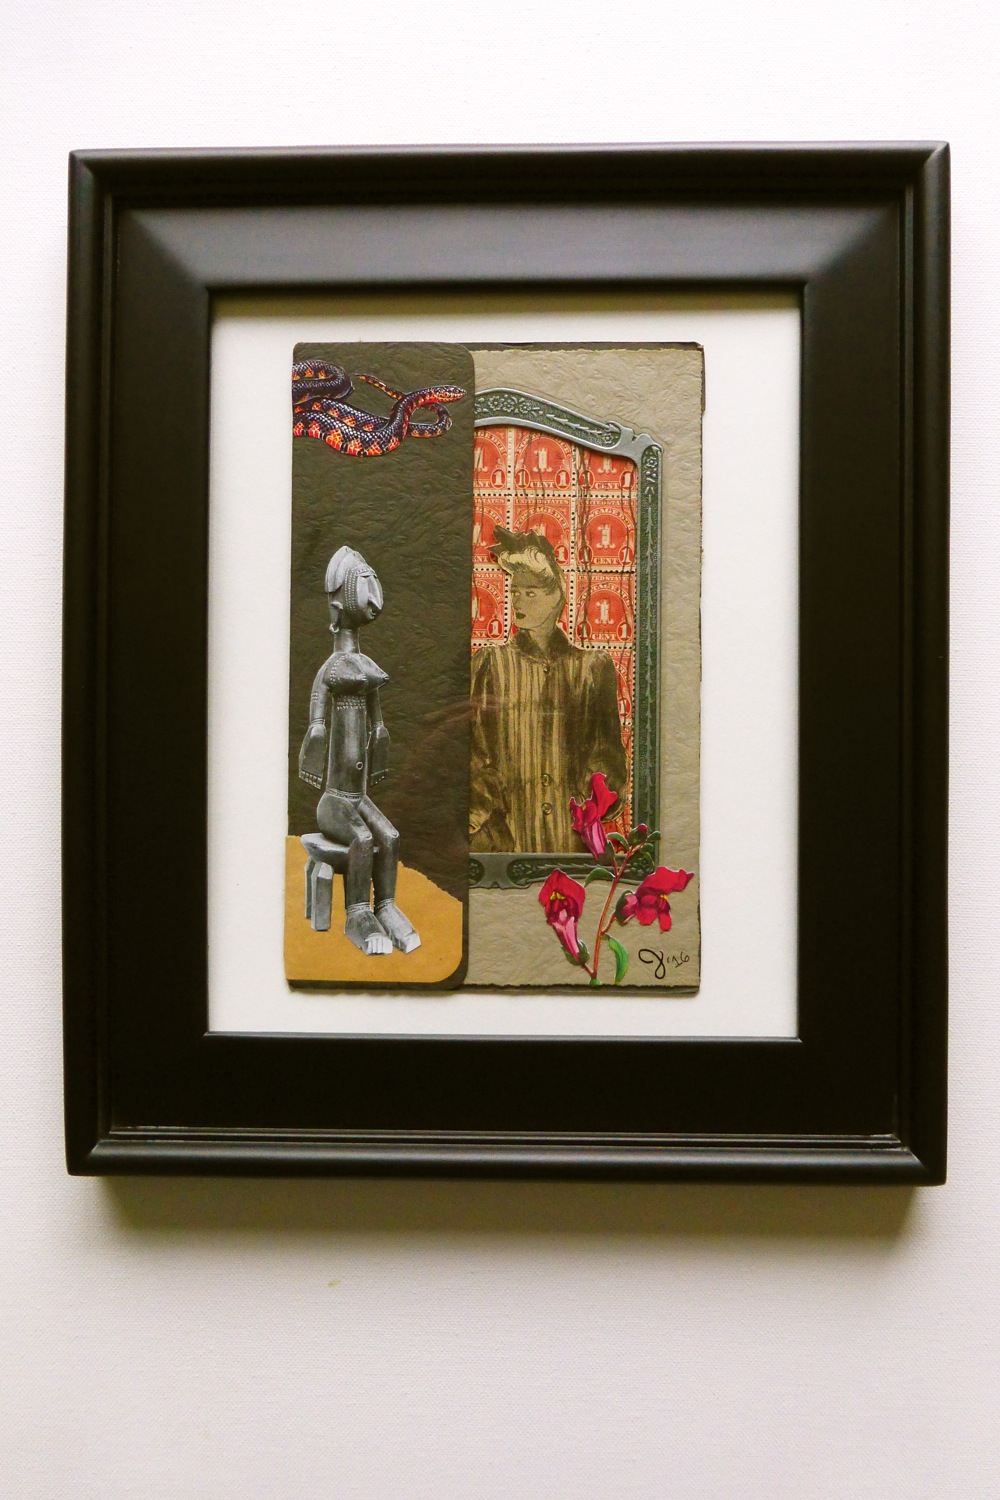 Two Women No. 2, collage, African sculpture, antique photo frame, antique postage stamps, black and red snake, red flowers, snap dragons, paper, scissors, glue